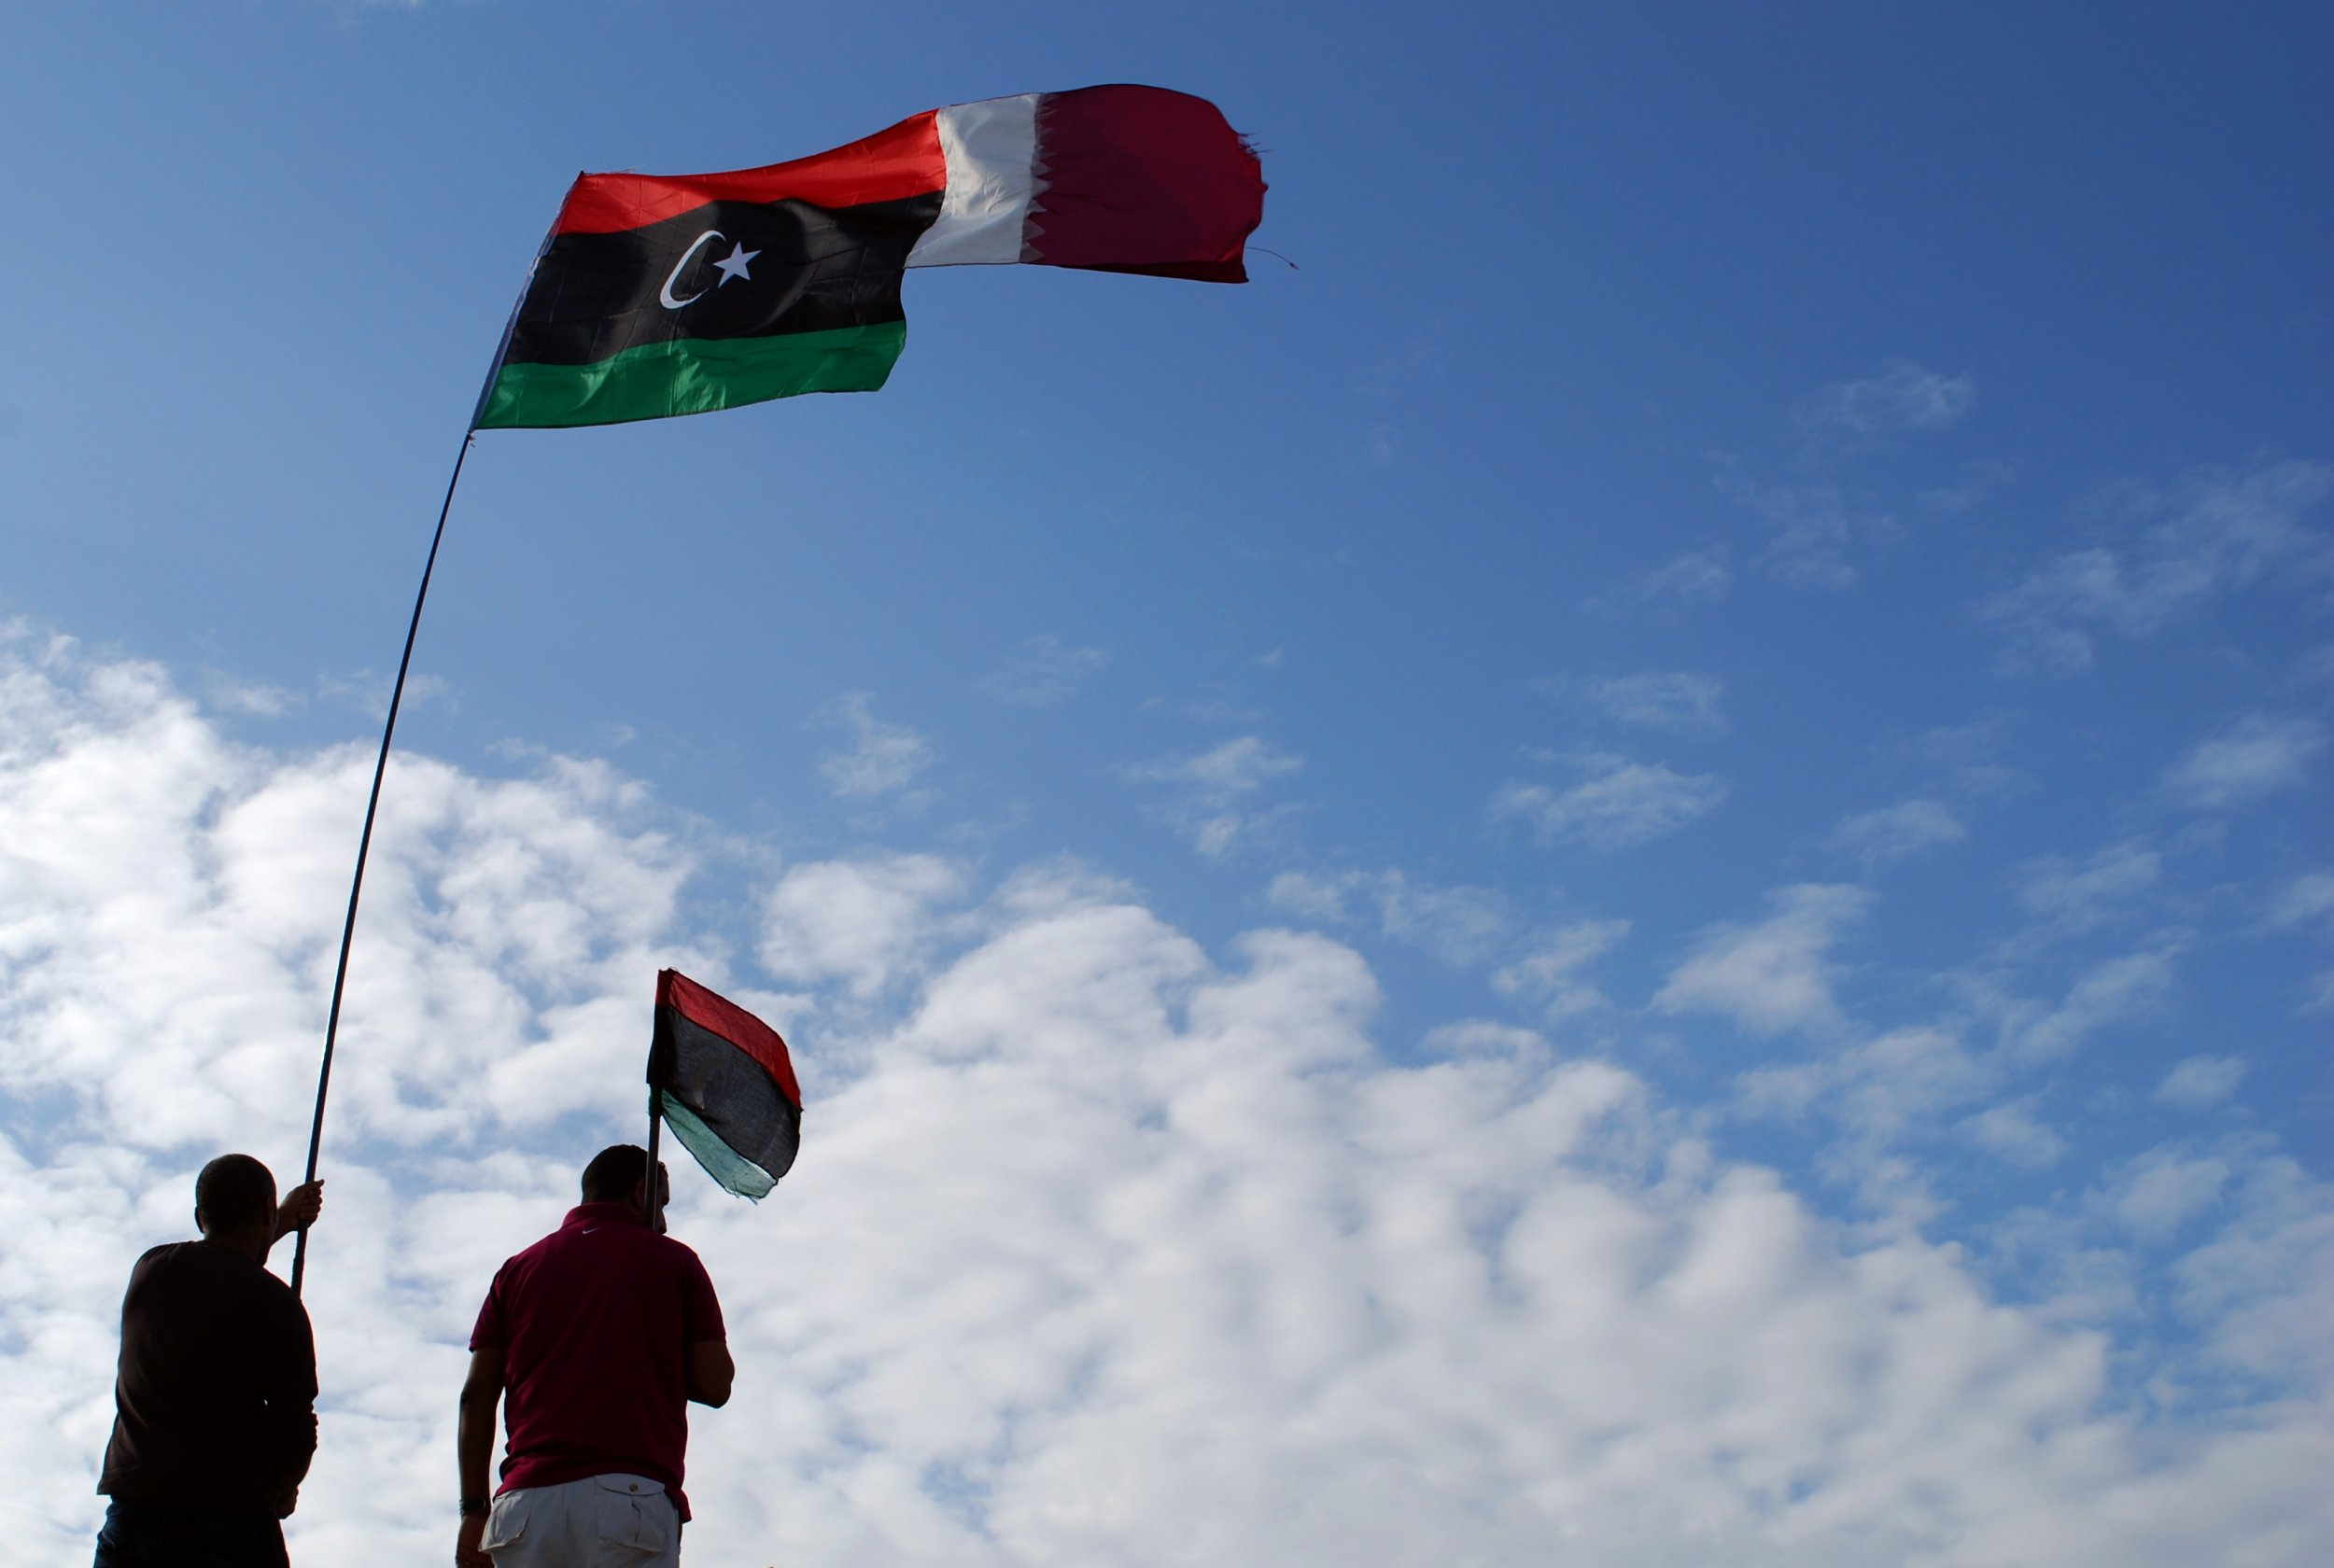 Libyan and Qatari flags